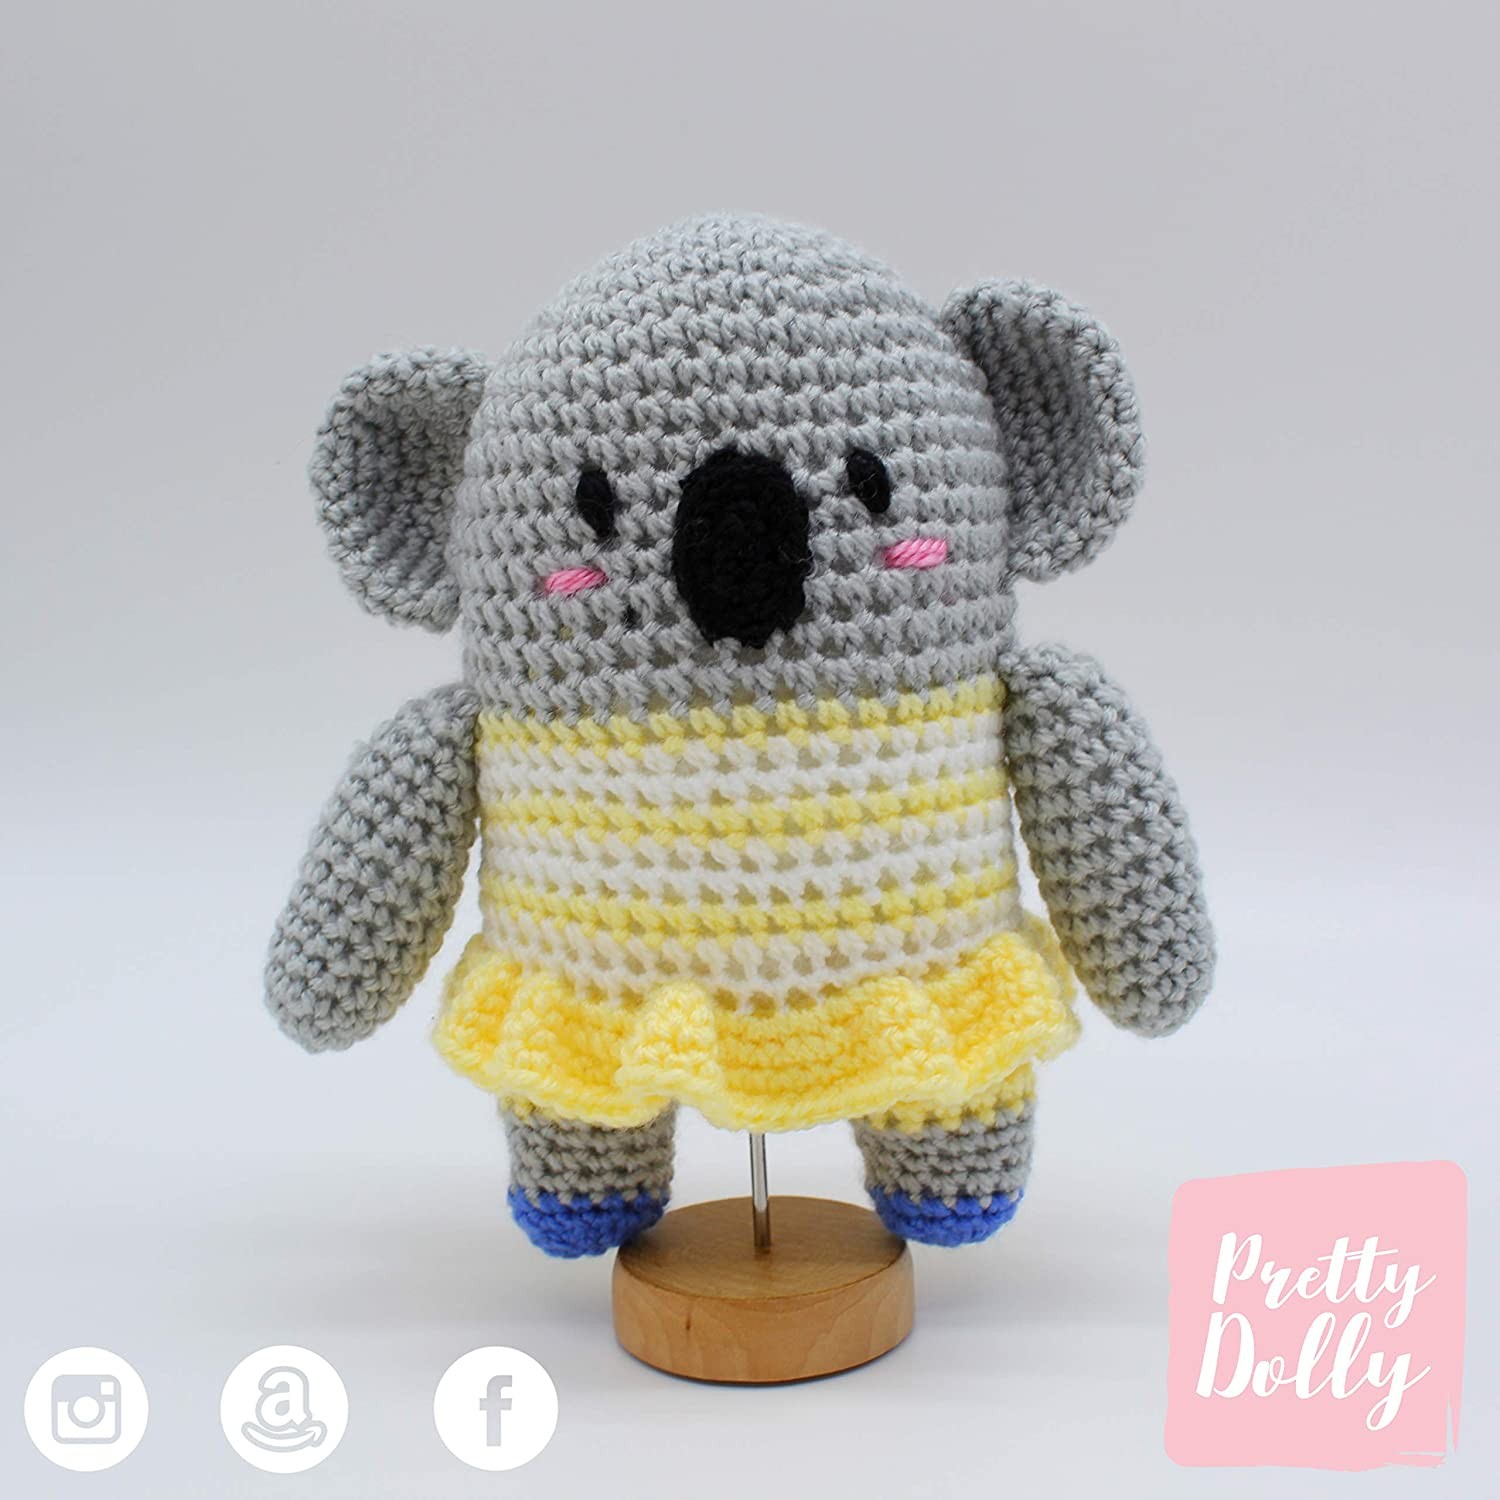 MUÑECO AMIGURUMI DE GANCHILLO PARA BEBÉ- MUÑECO DE CROCHET PARA NIÑO O NIÑA - REGALO ANIMAL KOALA NIÑA- PRETTY DOLLY: Amazon.es: Handmade